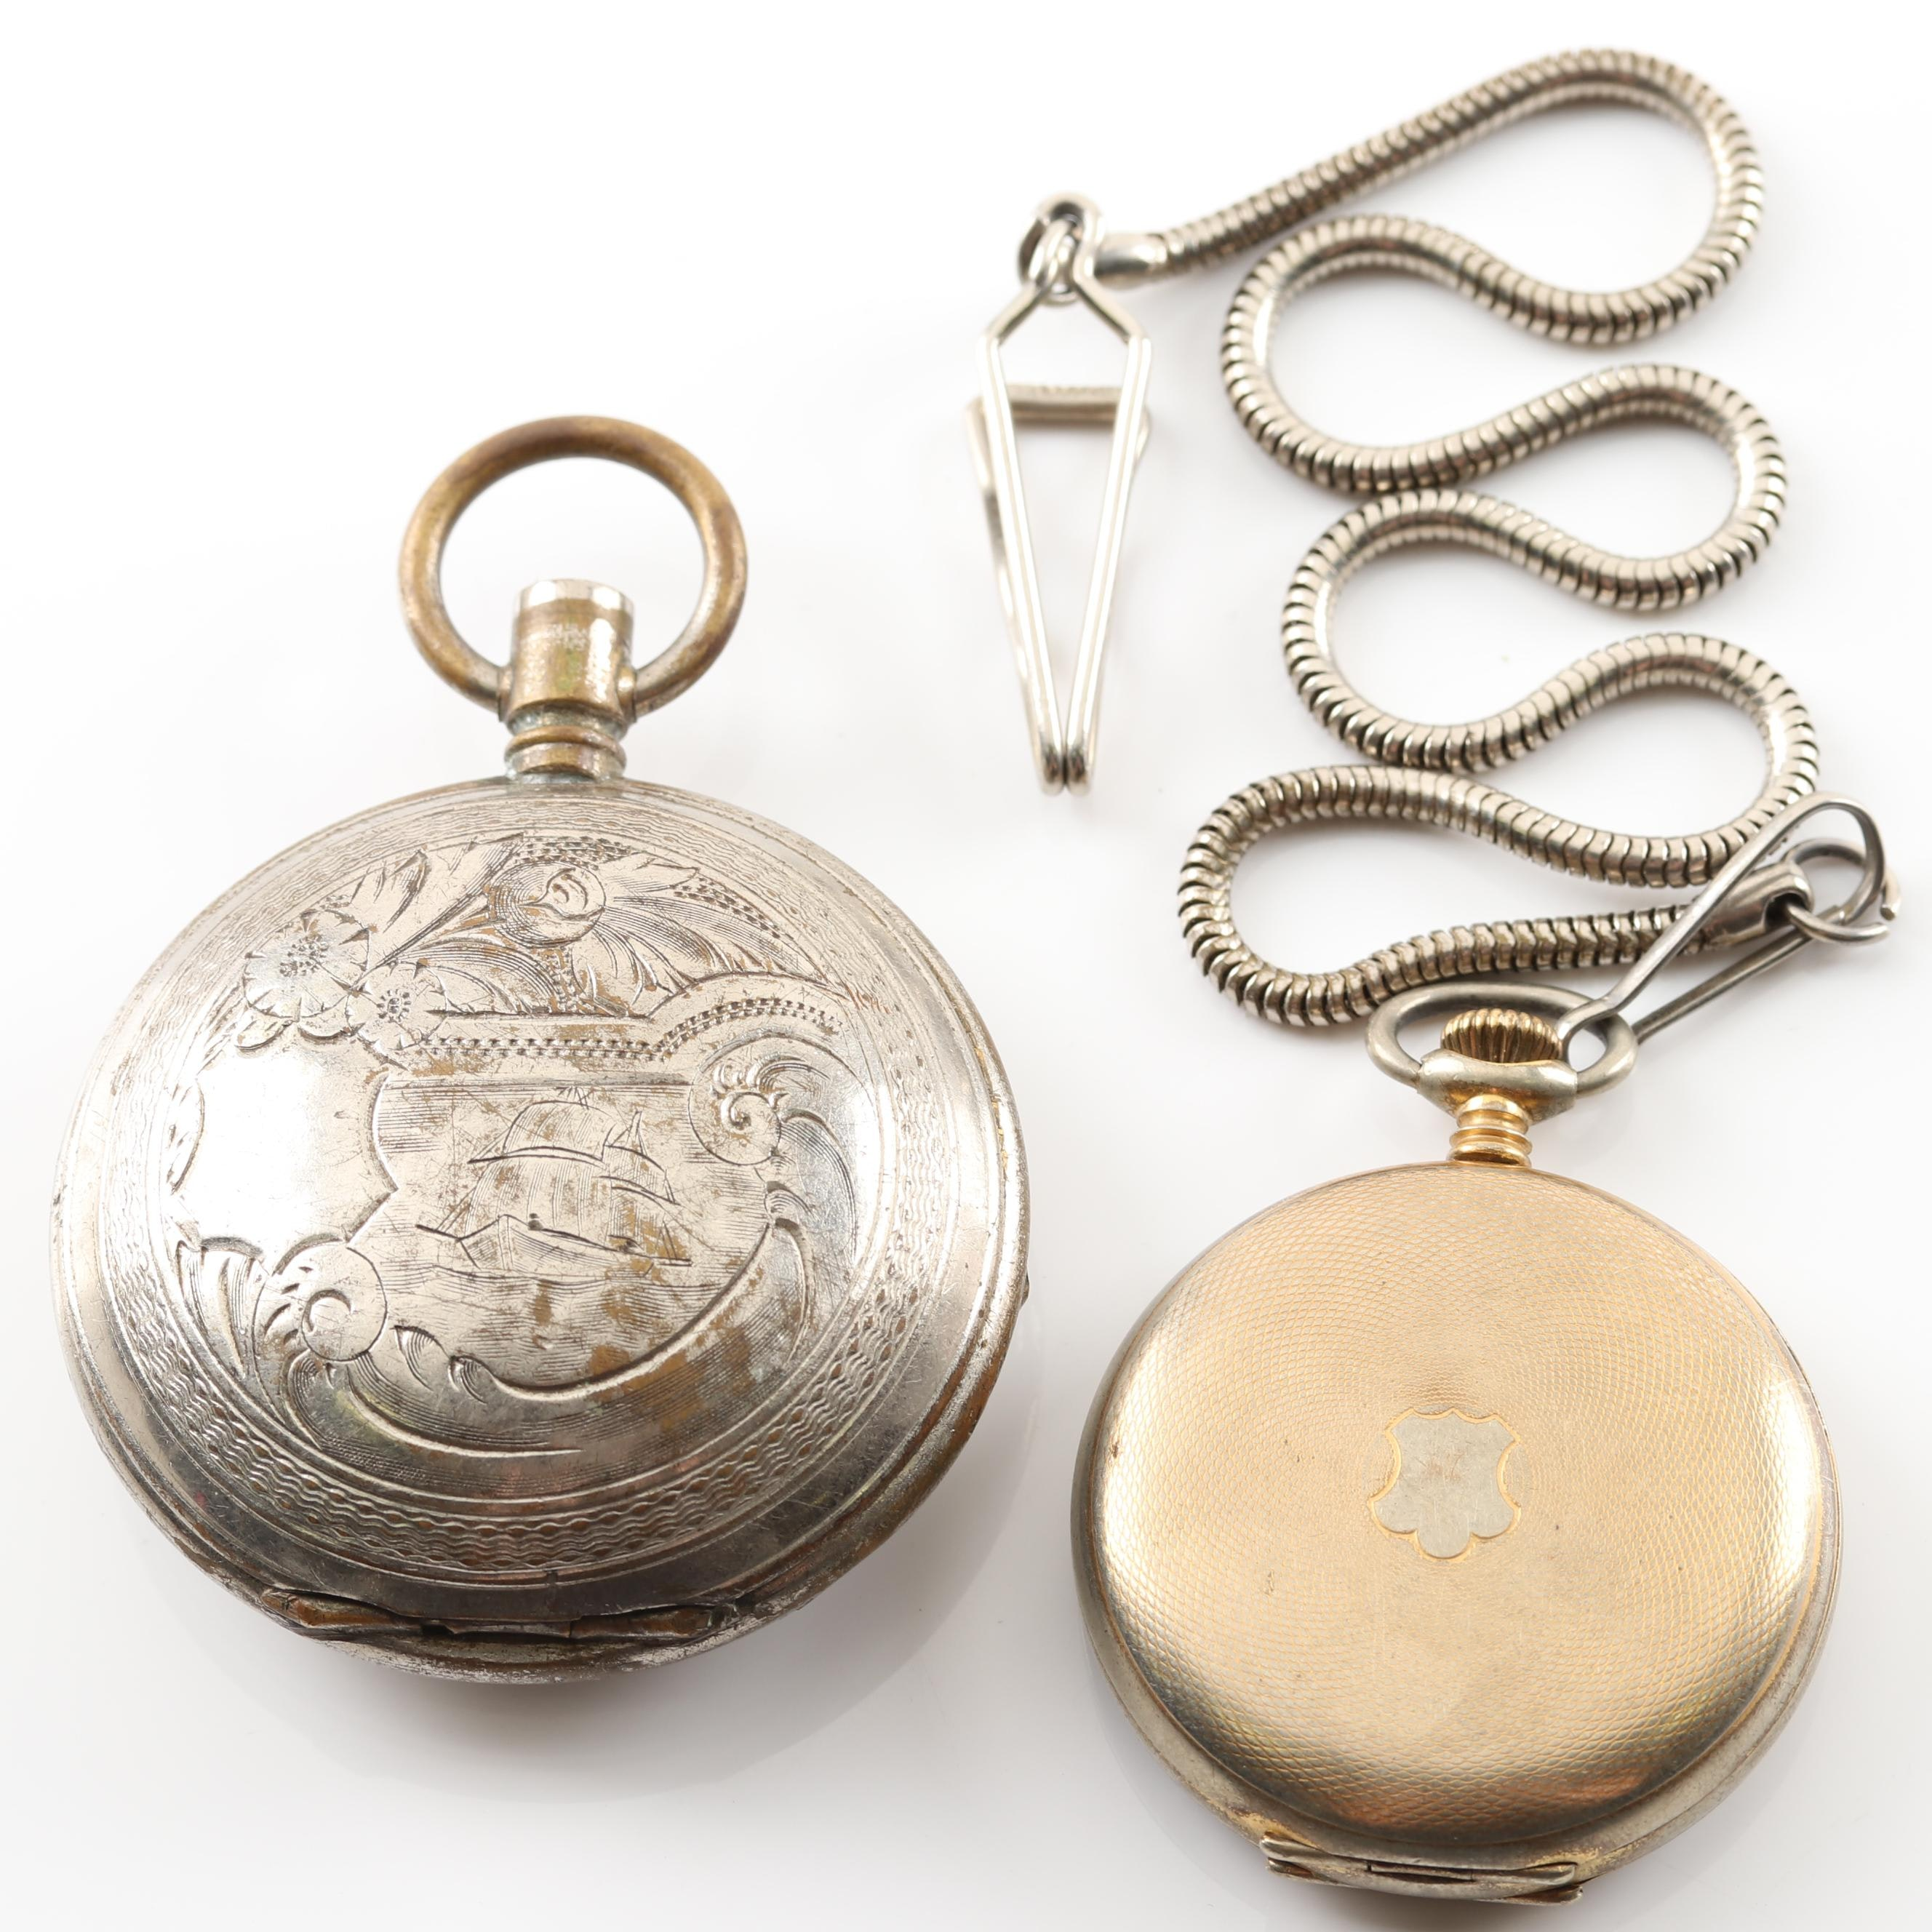 Elgin Gold Tone Pocket Watch and Pocket Watch Case